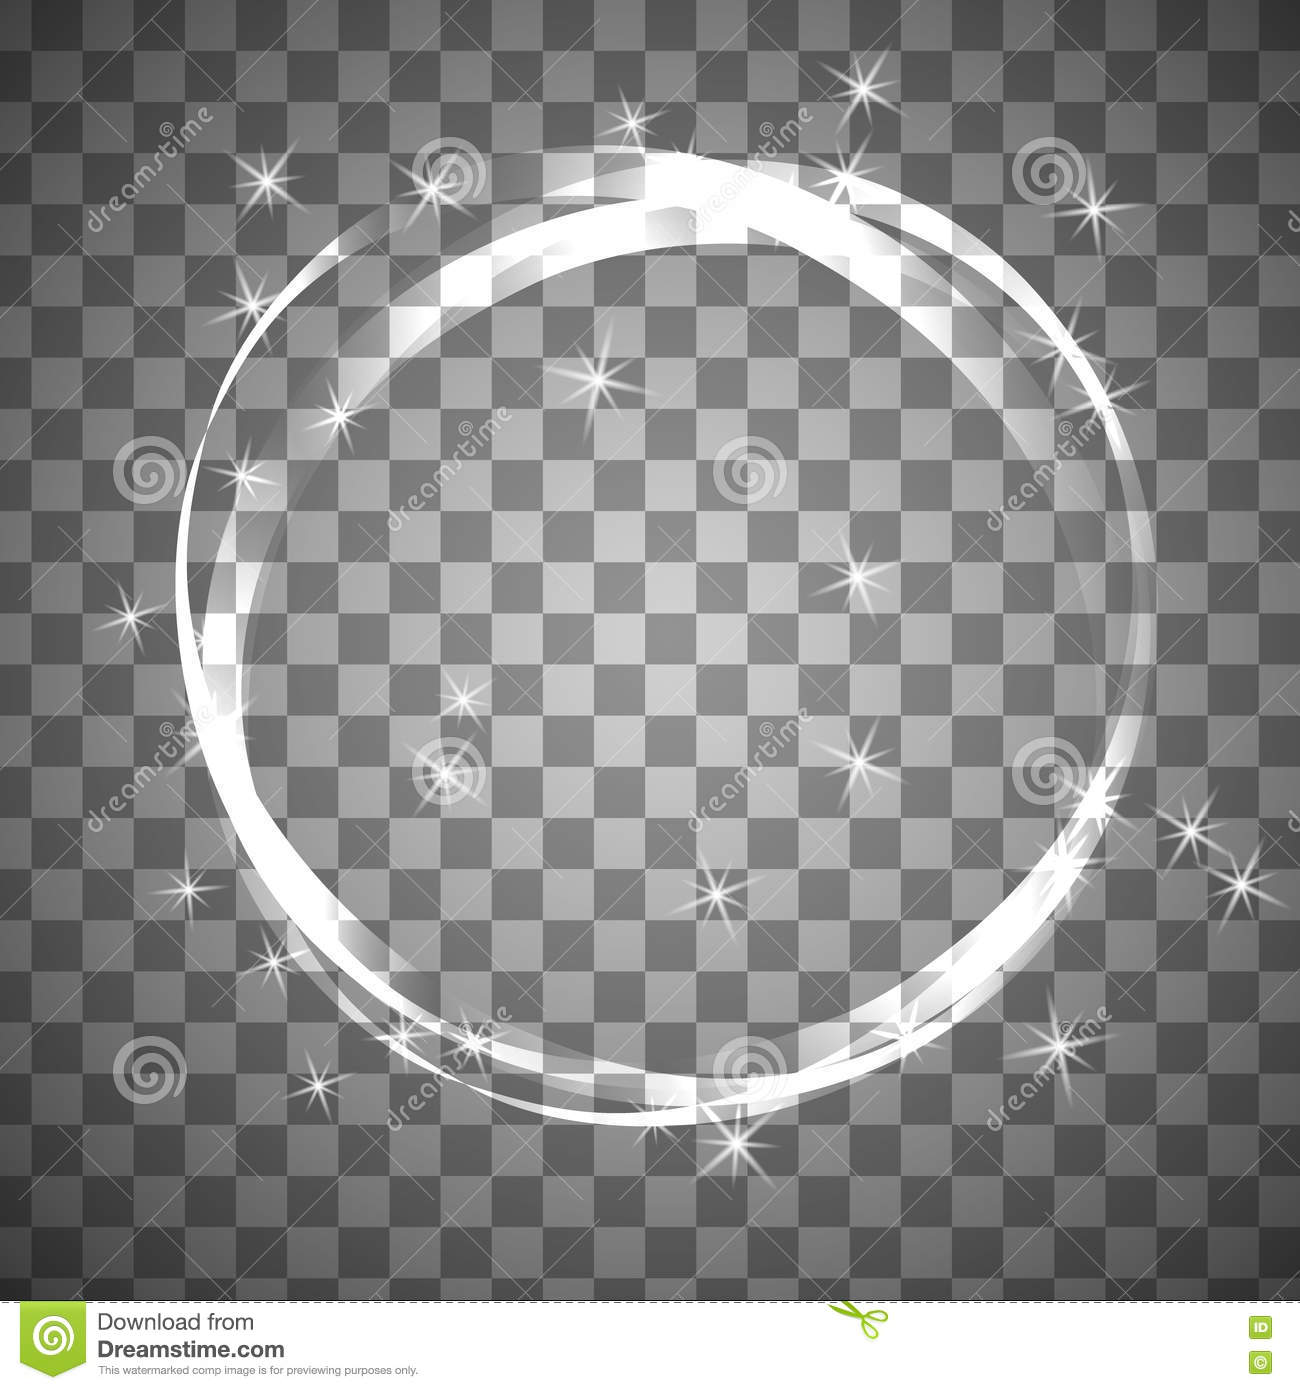 how to draw a transparent circle in photoshop